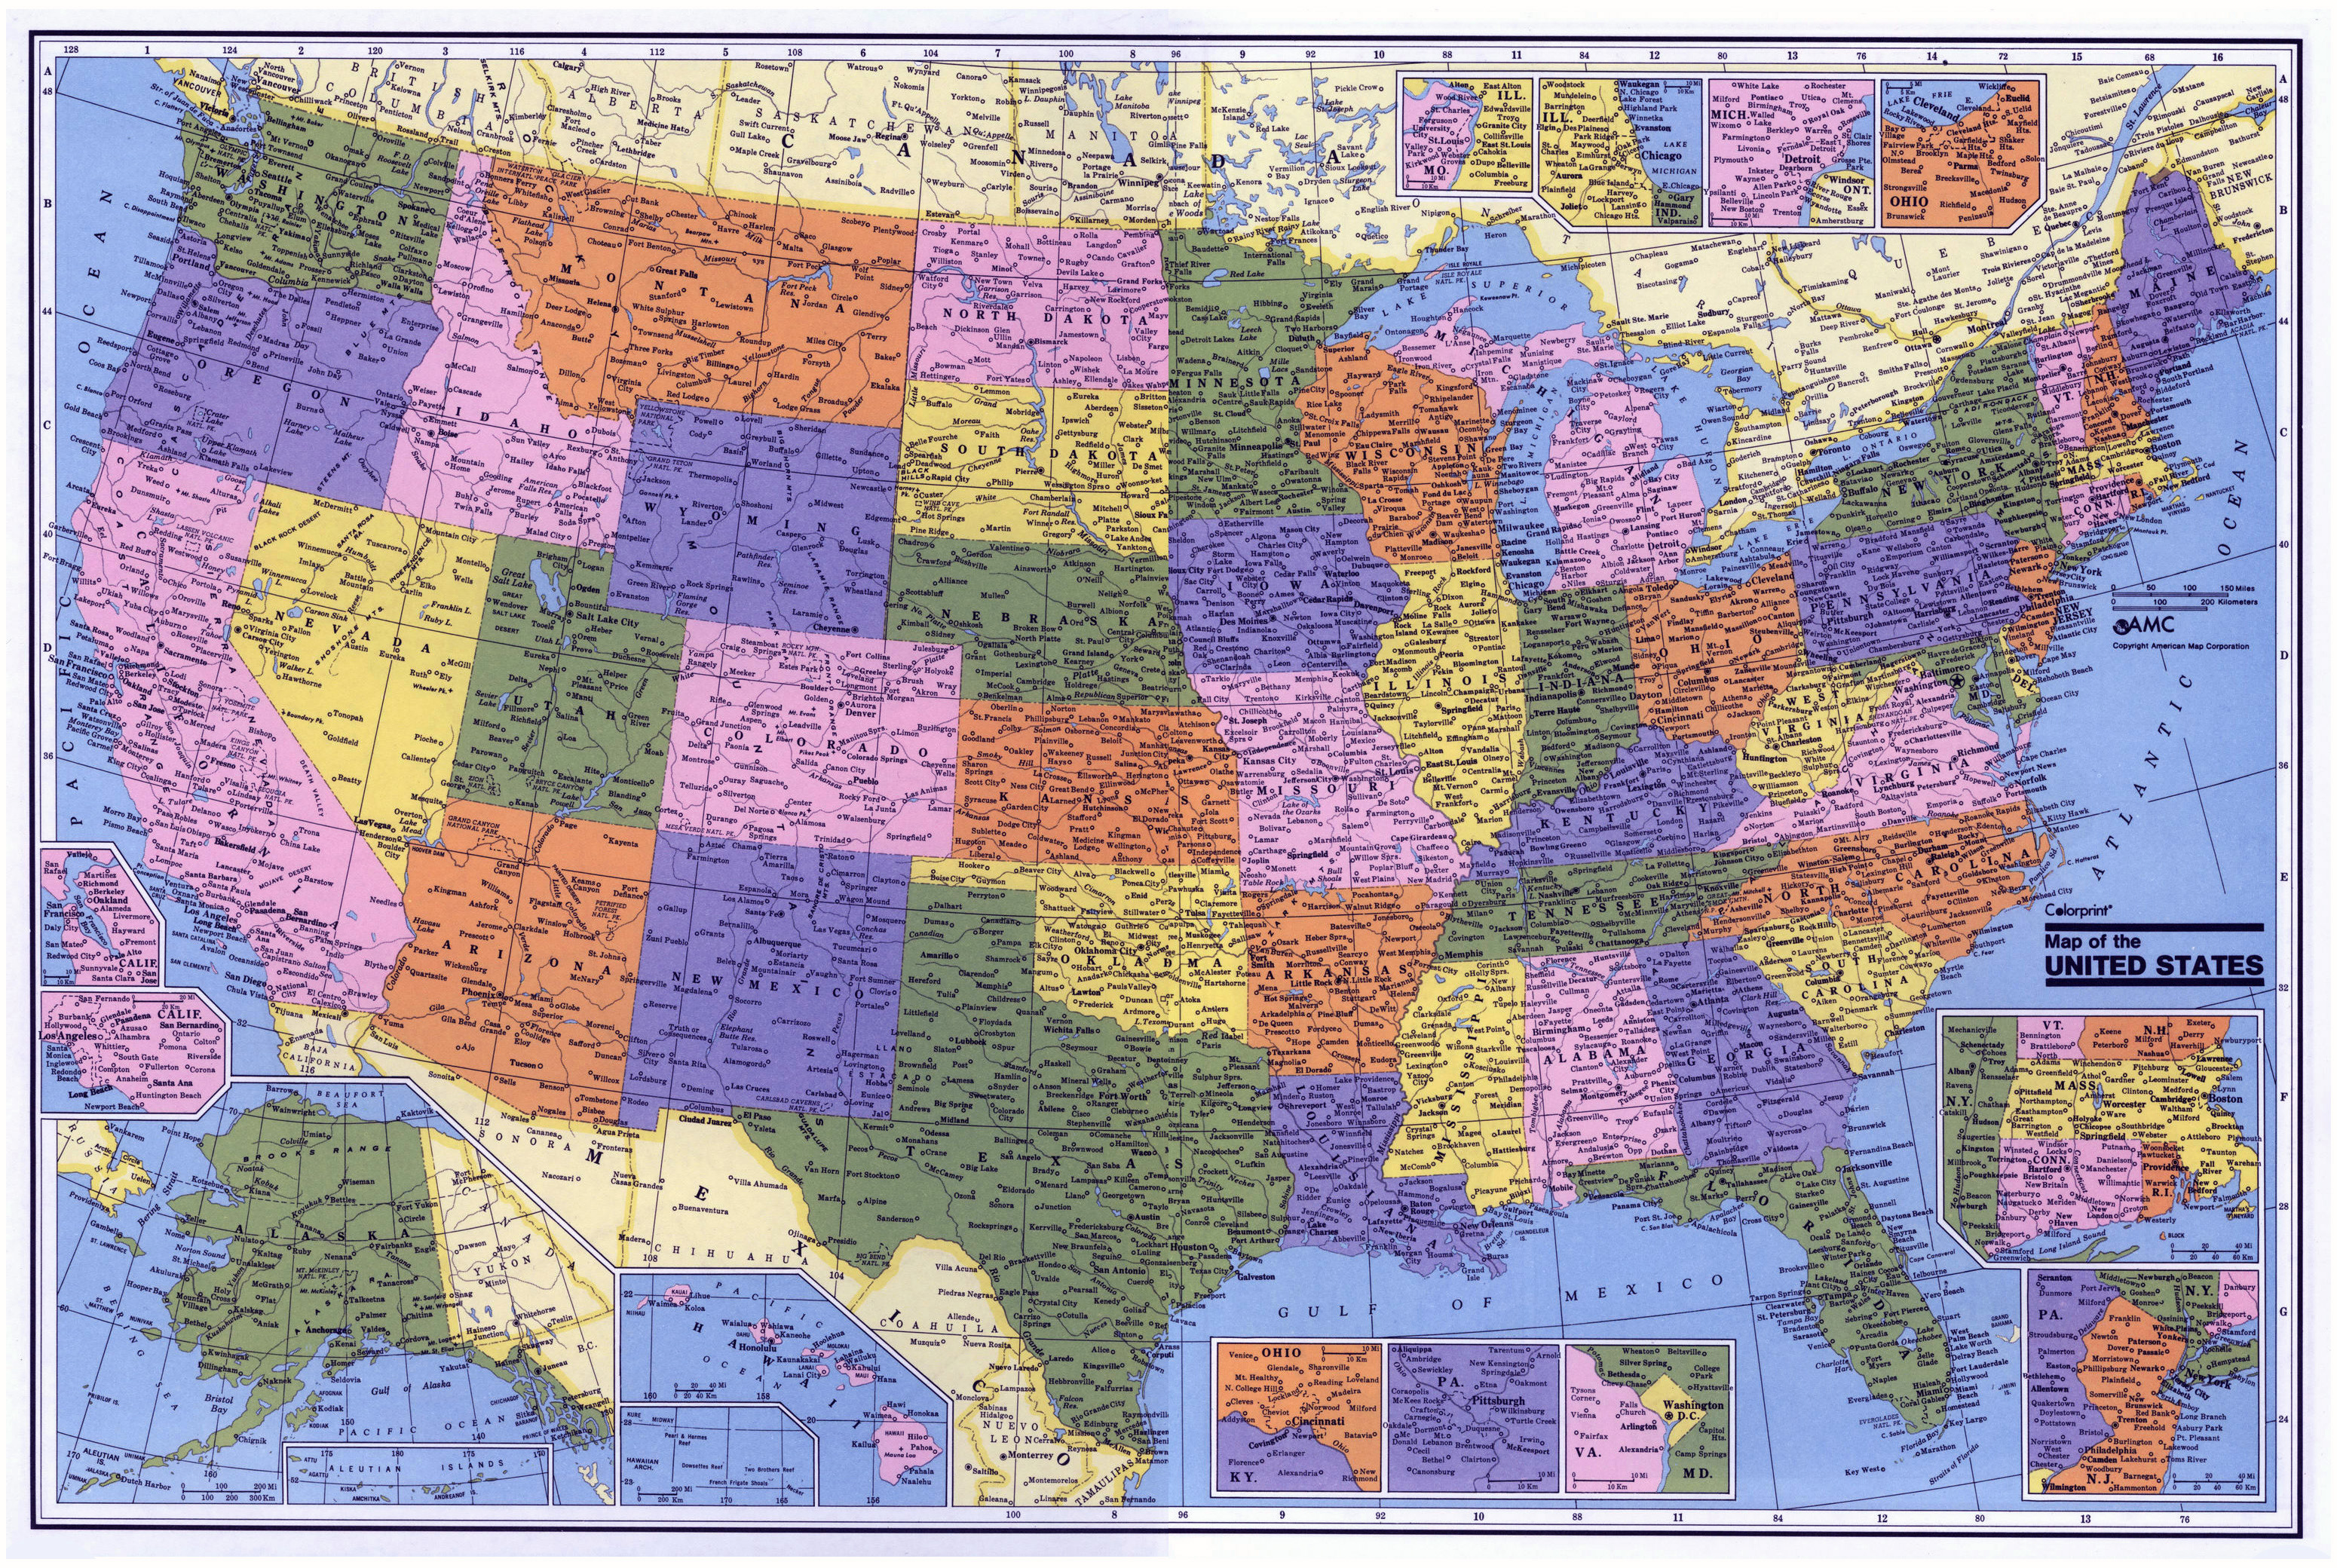 Large Administrative Map Of The USA USA Maps Of The USA Maps - Usa large map